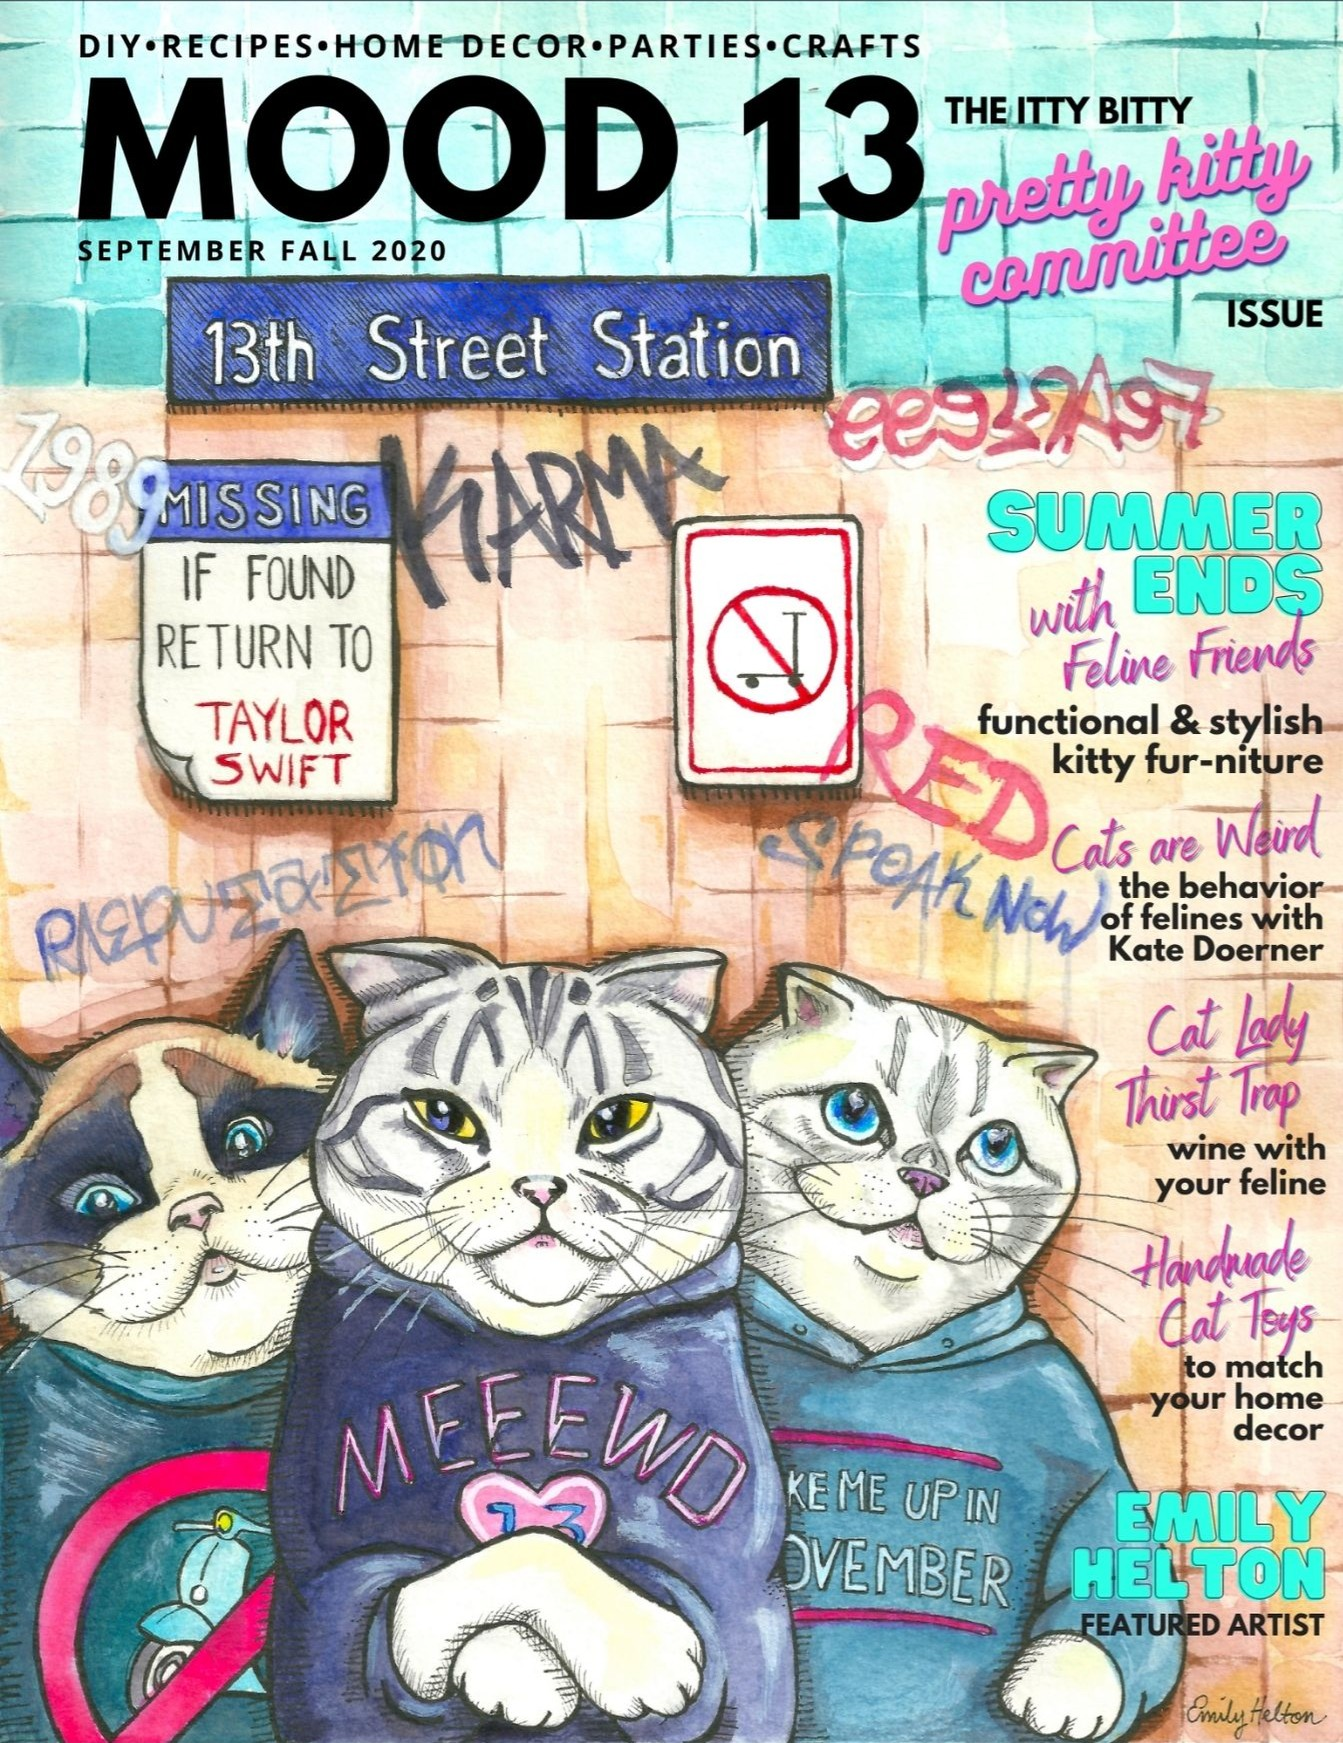 Itty Bitty Pretty Kitty Issue September 2020